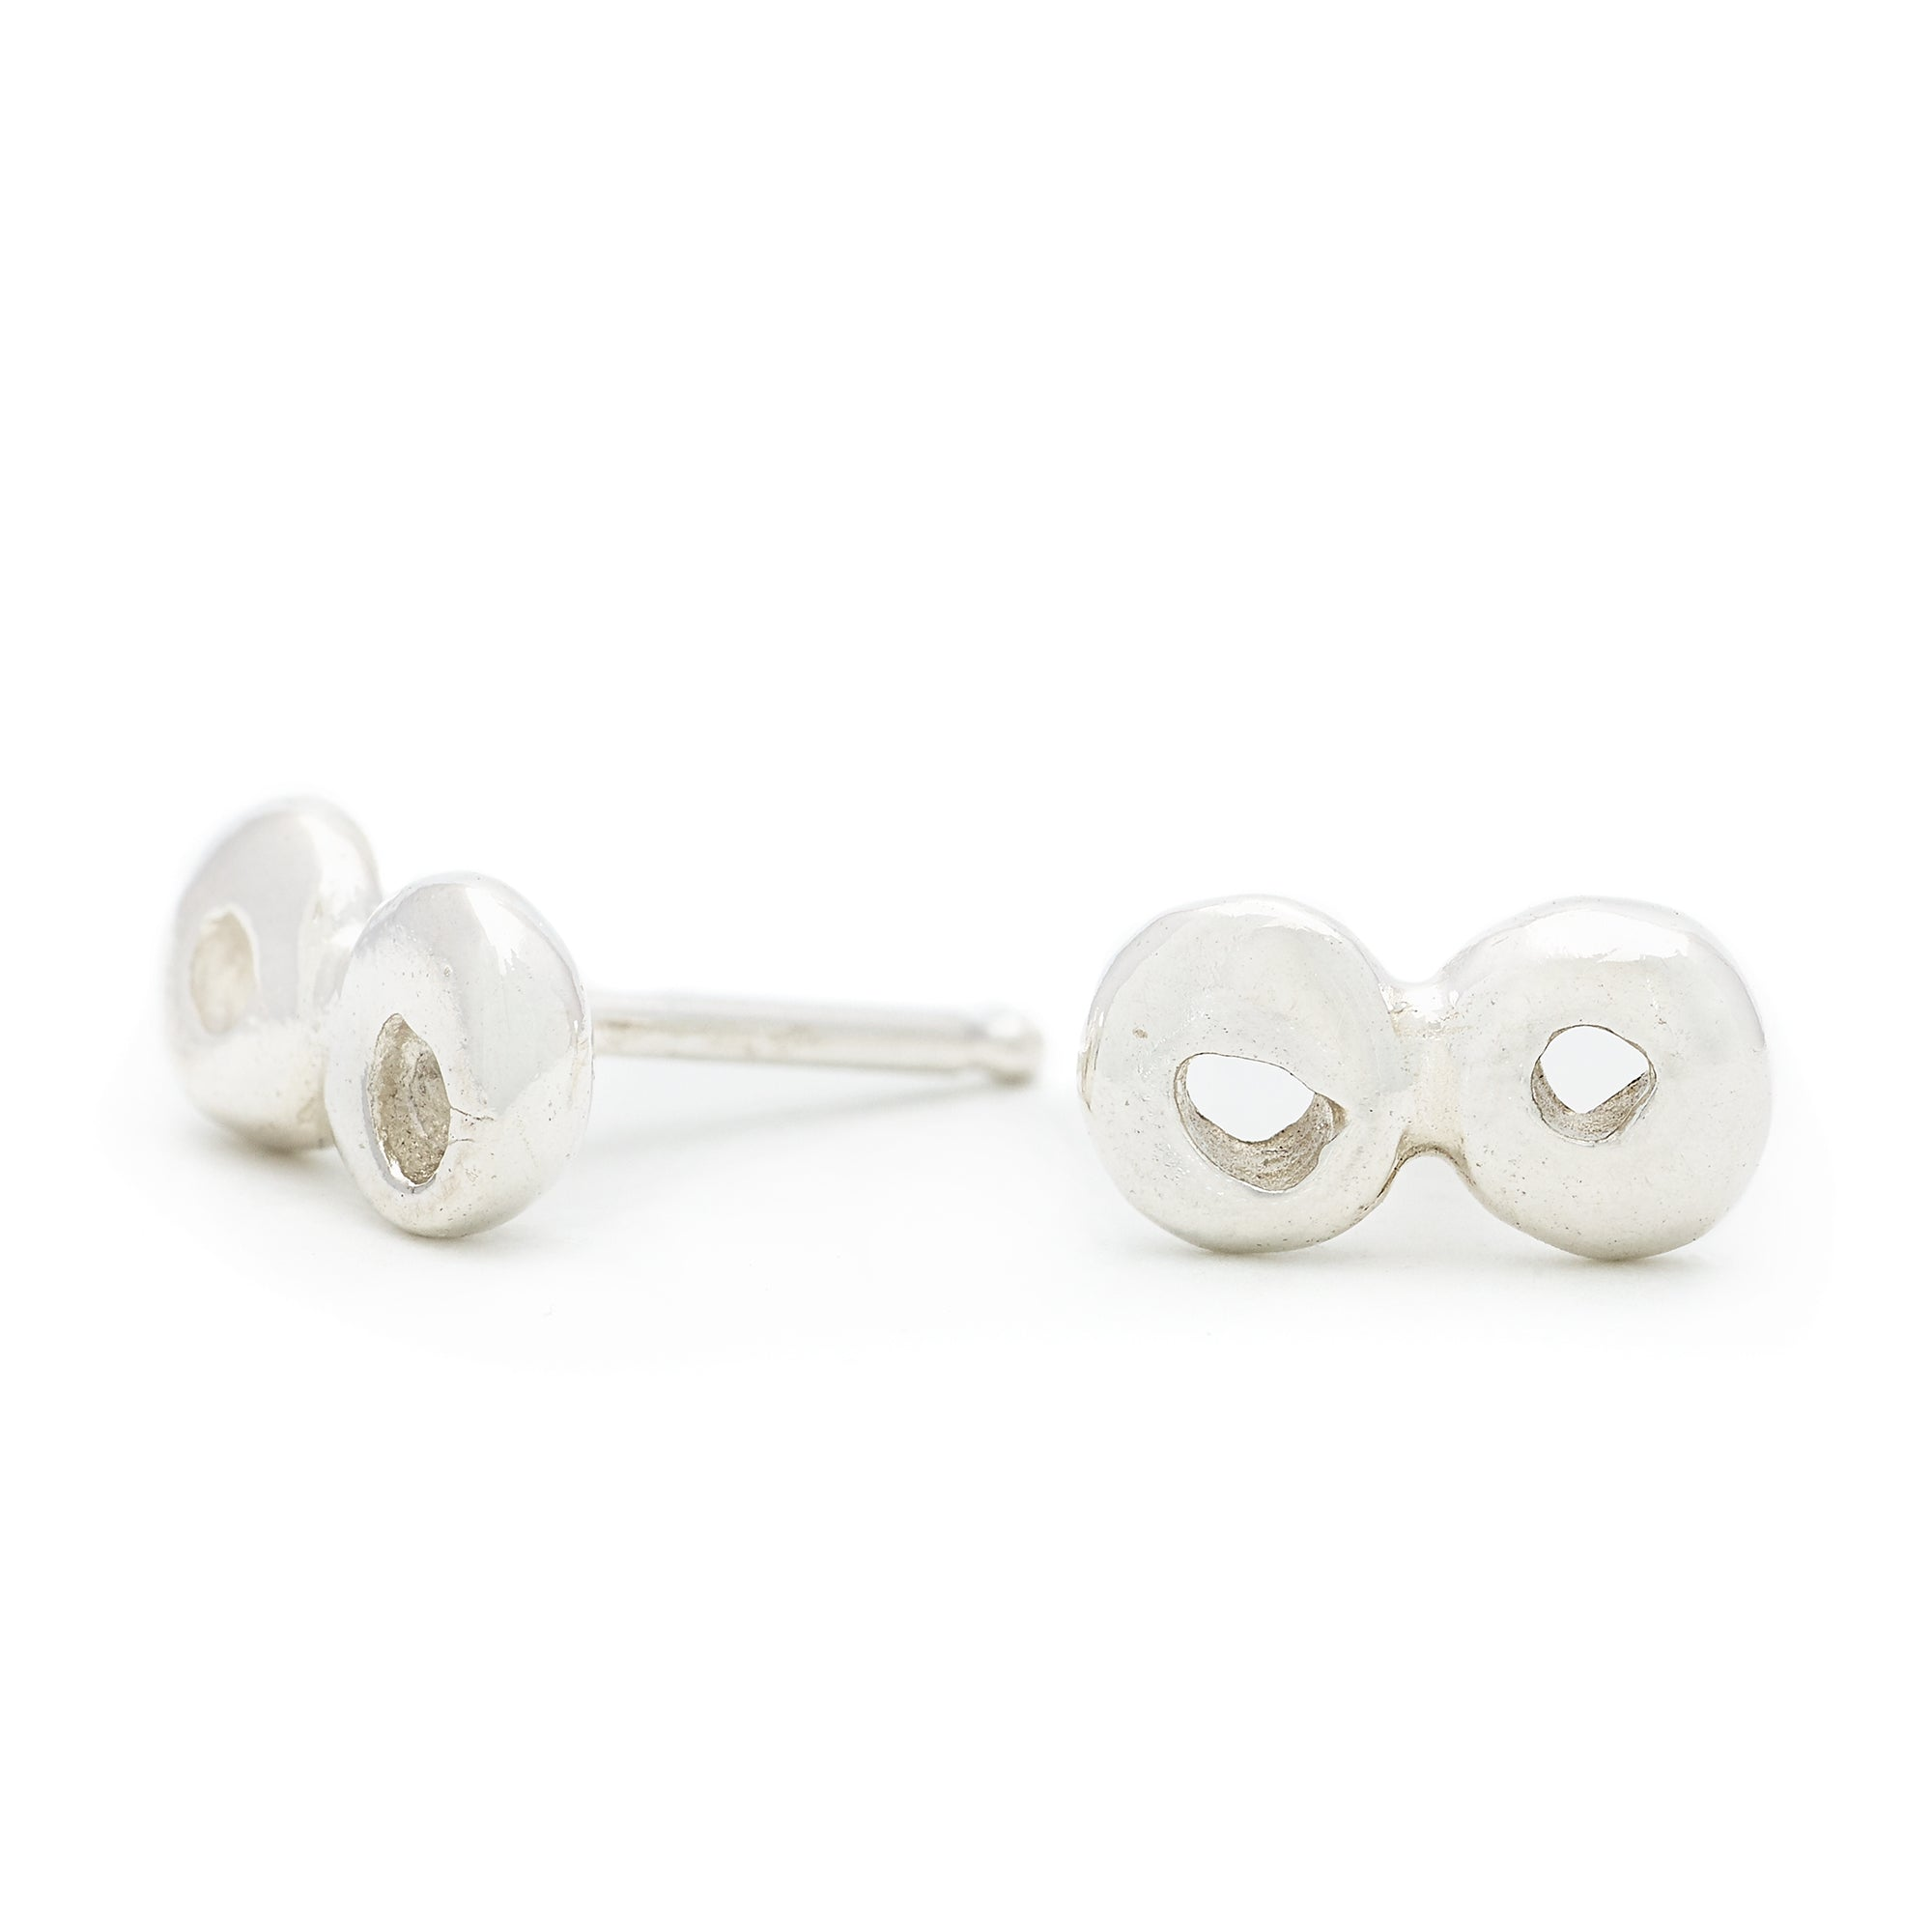 Double Dot Stud Earrings - Johanna Brierley Jewellery Design